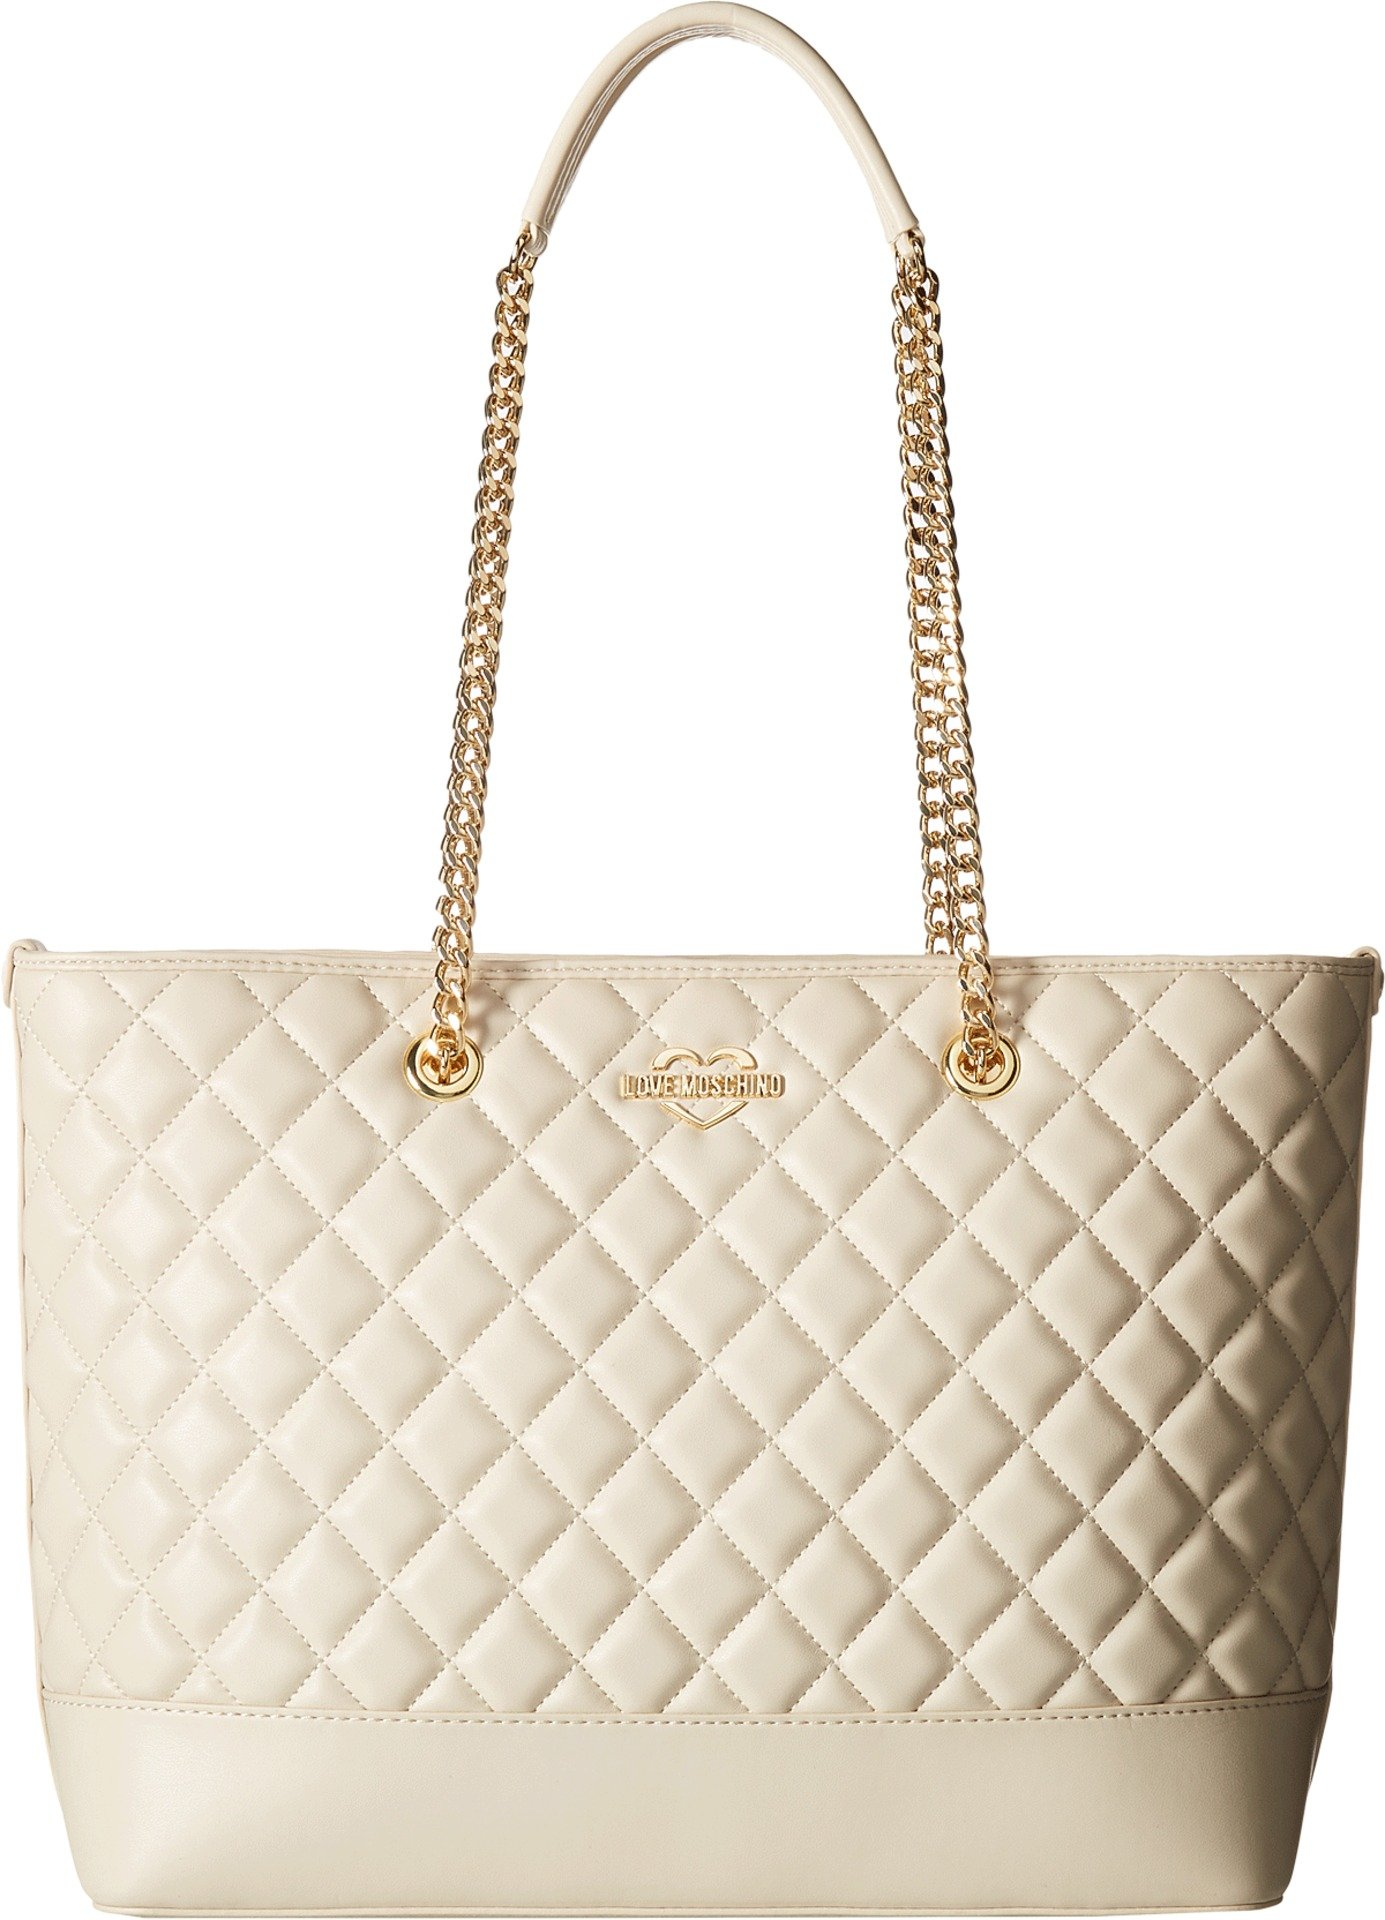 LOVE Moschino Women's Super Quilted Shopping Bag Ivory One Size